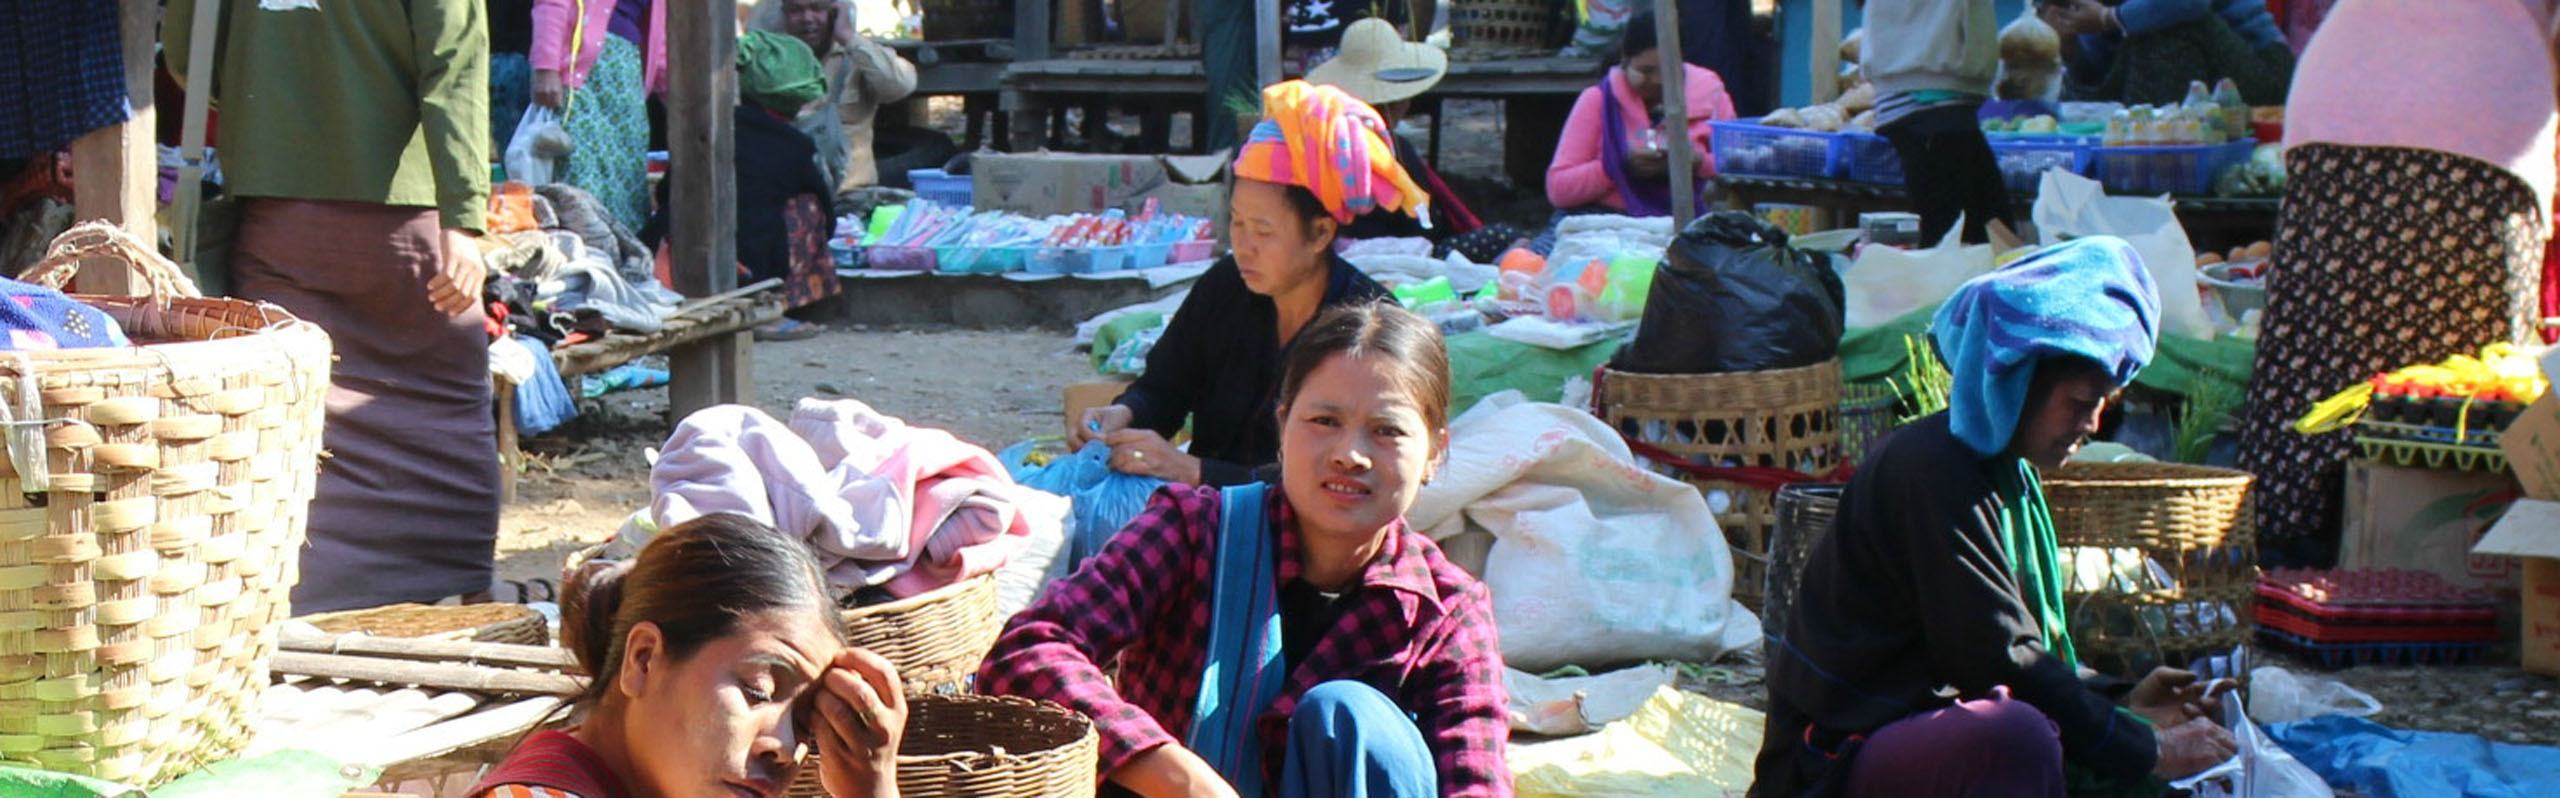 A Complete Guide for Shopping in Myanmar